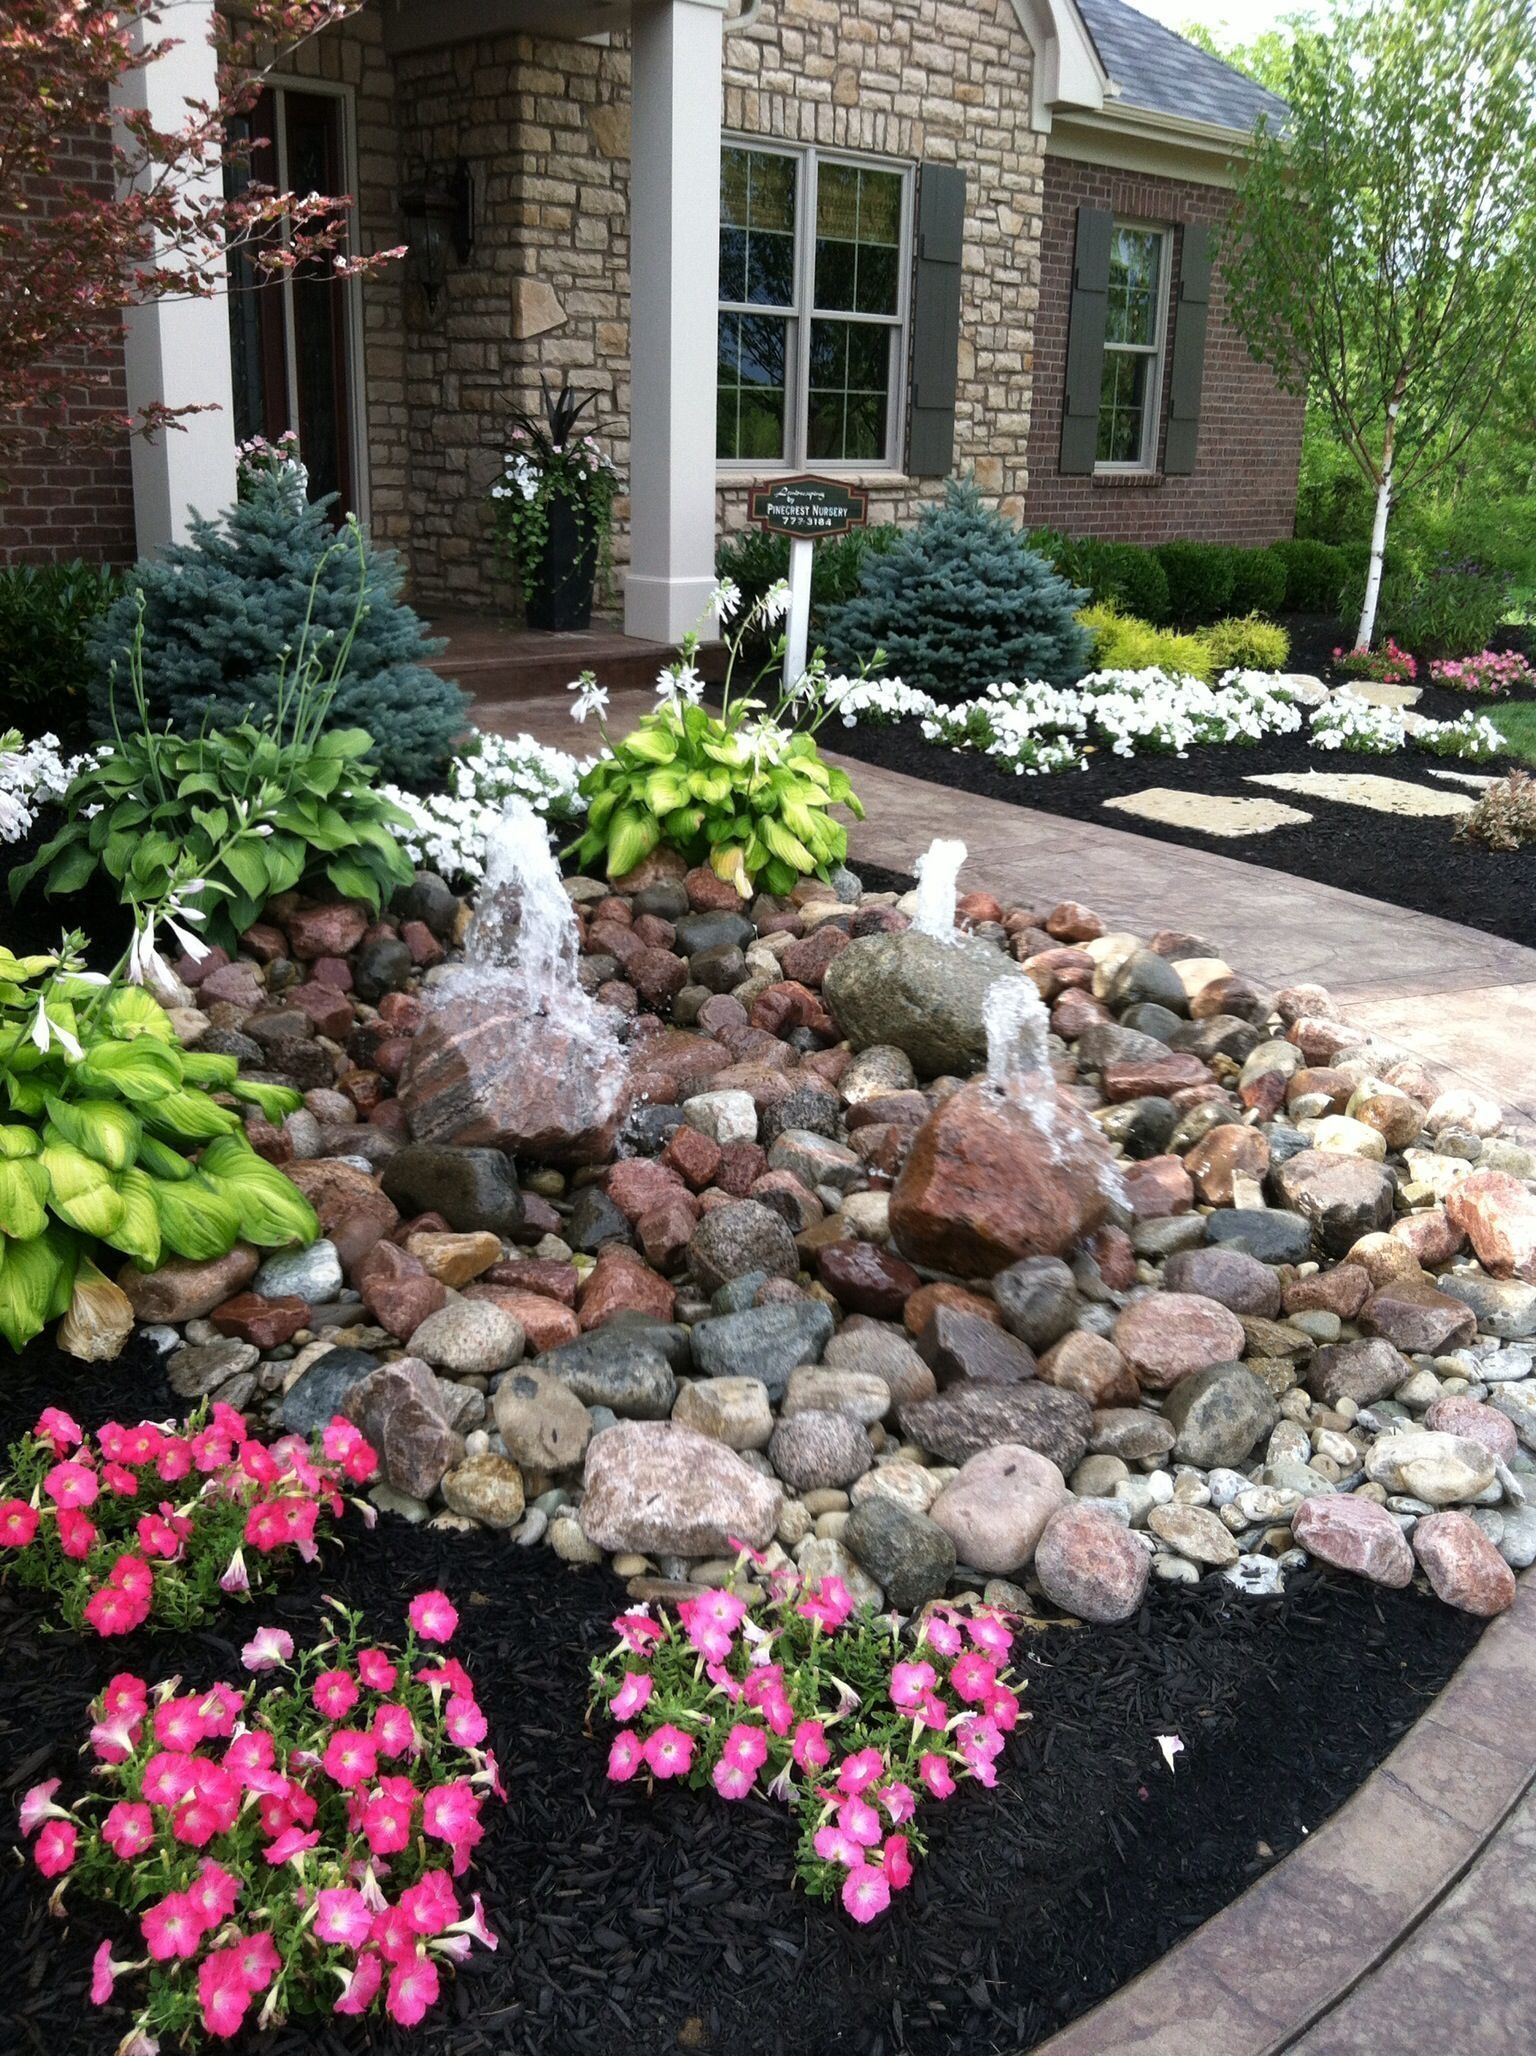 43 Lovely River Rocks for Front Porch | Small front yard ...